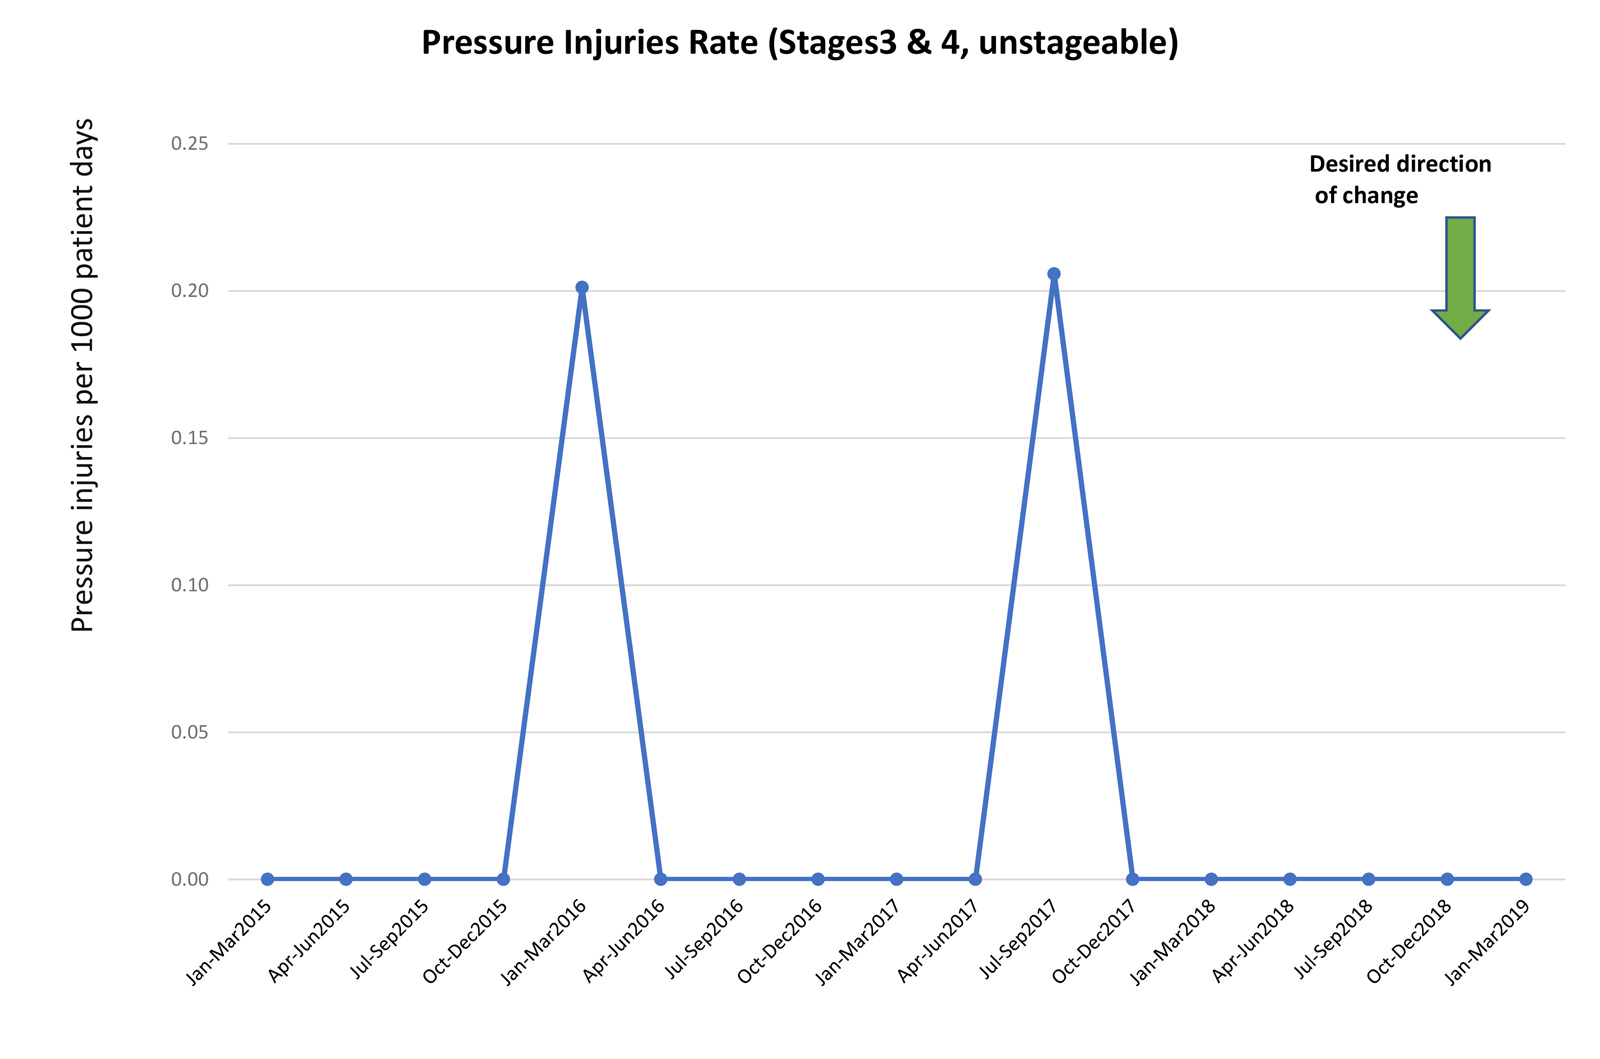 chart of pressure injuries